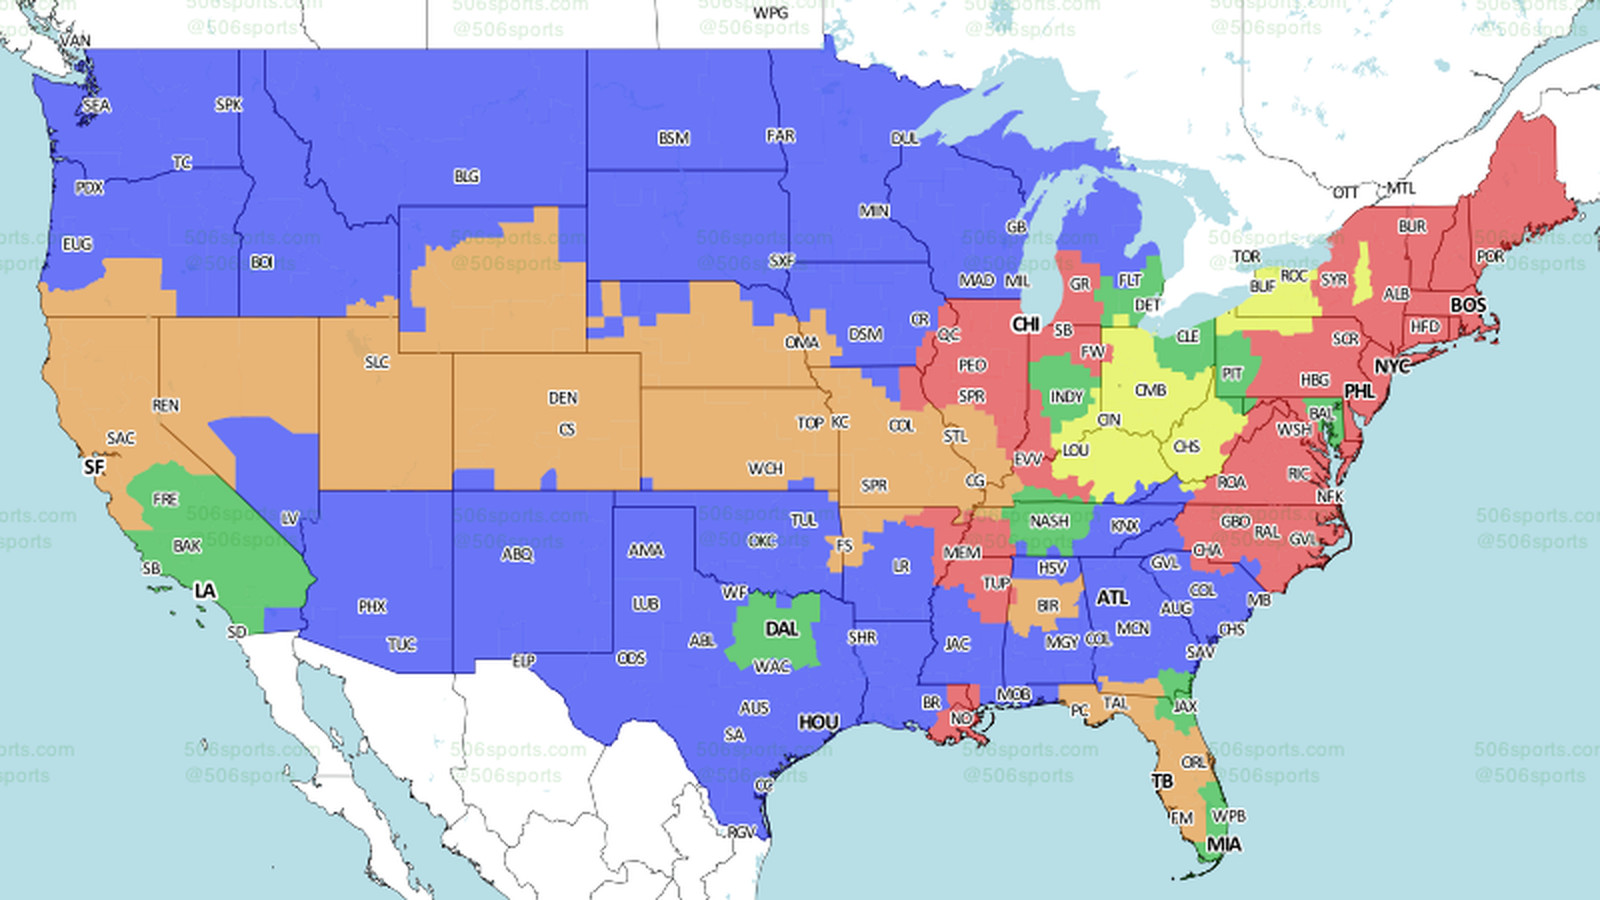 NFL Week 11 Broadcast Map - Turf Show Times